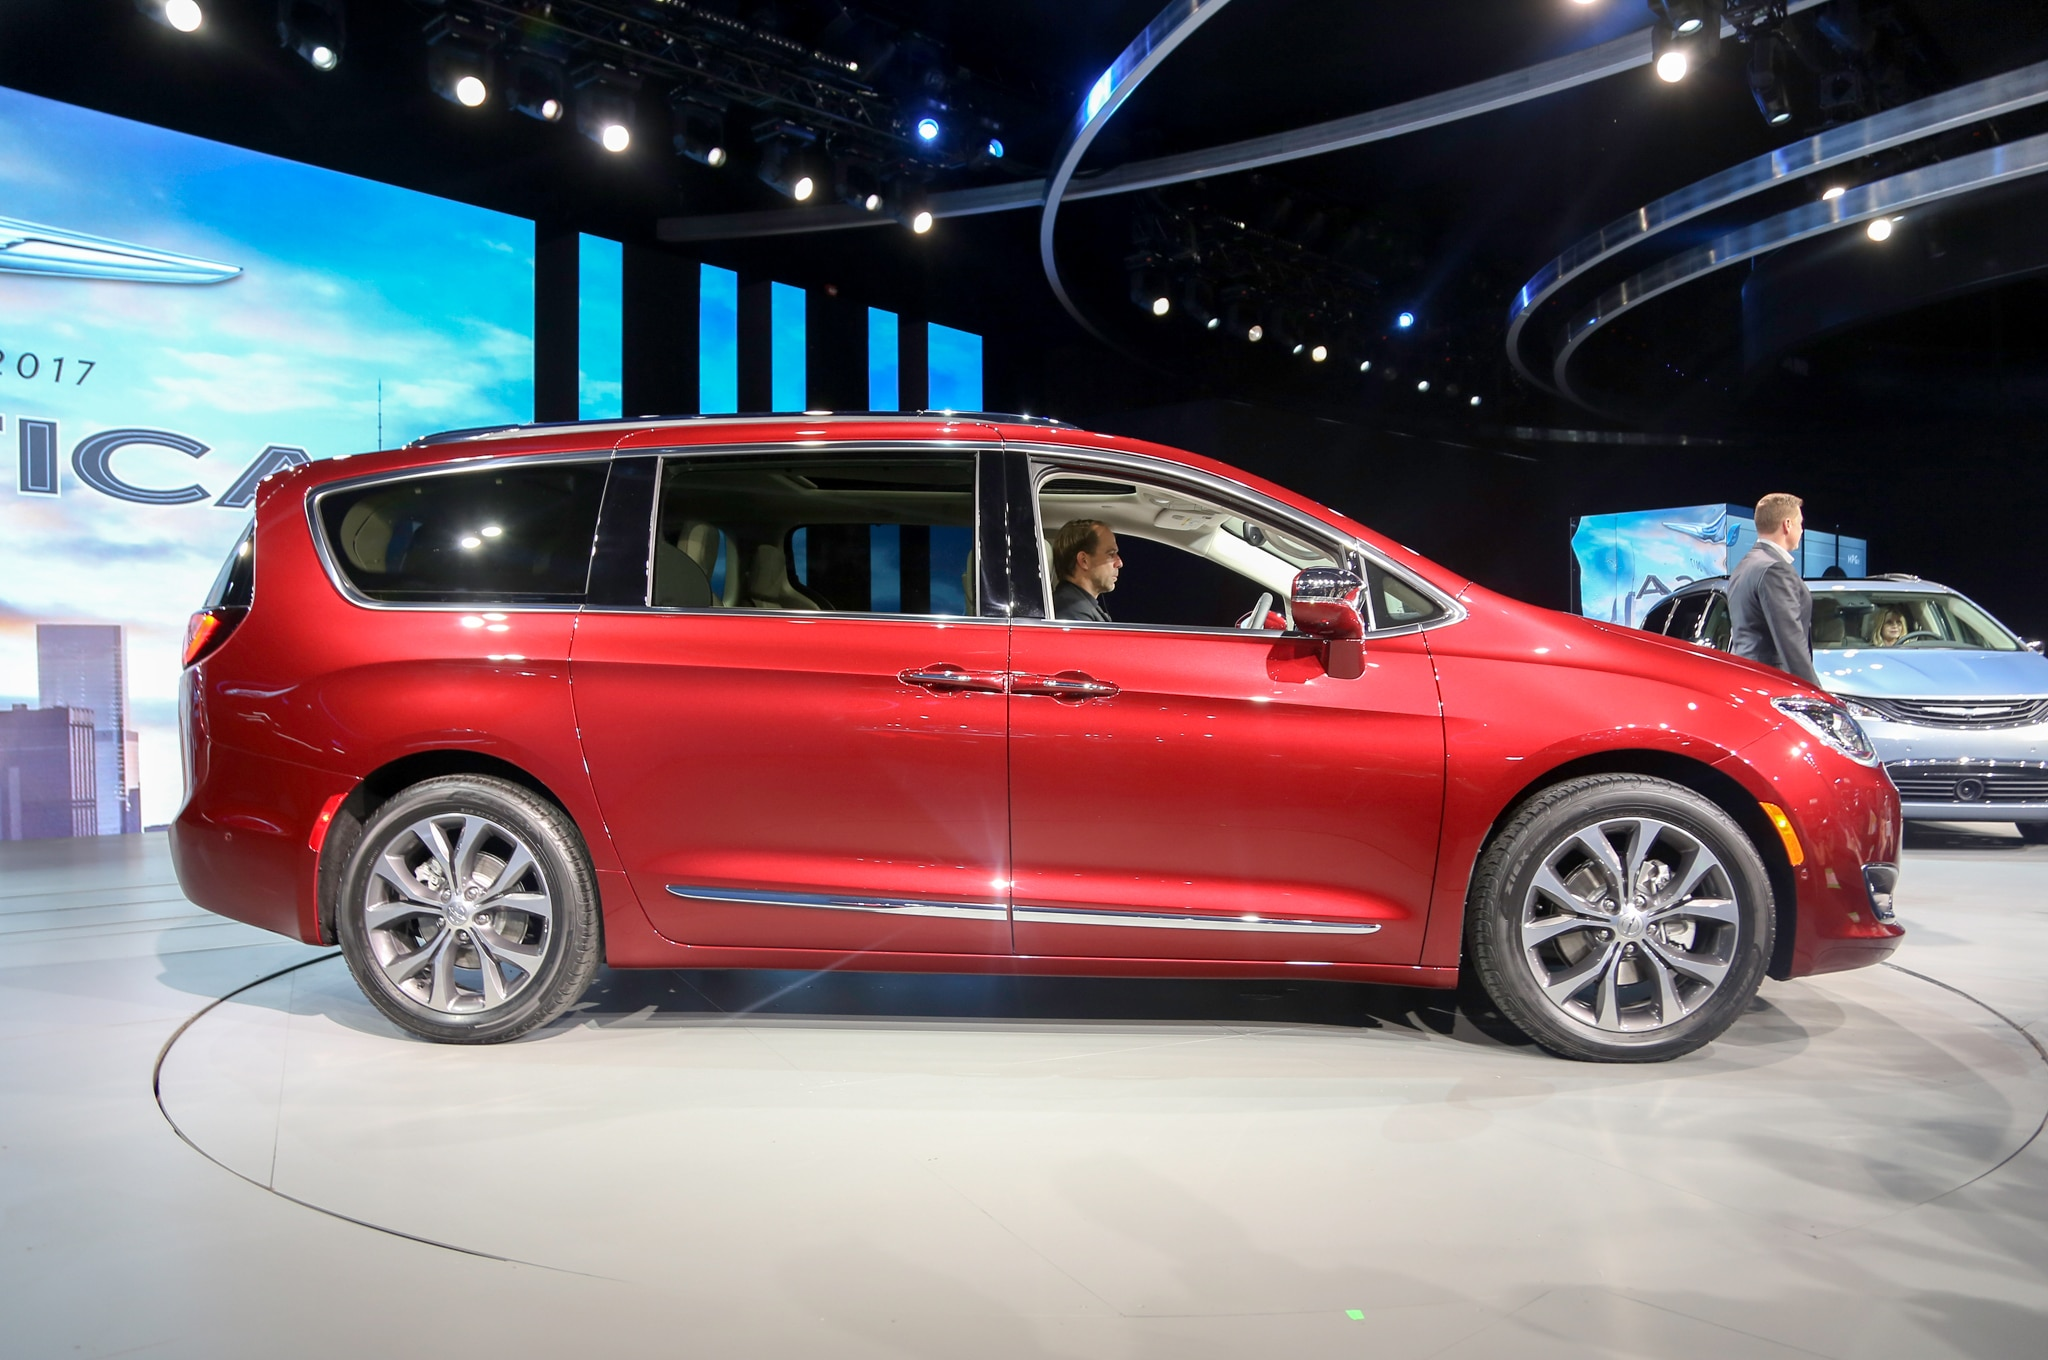 2017 chrysler pacifica rated at 18 28 mpg automobile. Black Bedroom Furniture Sets. Home Design Ideas